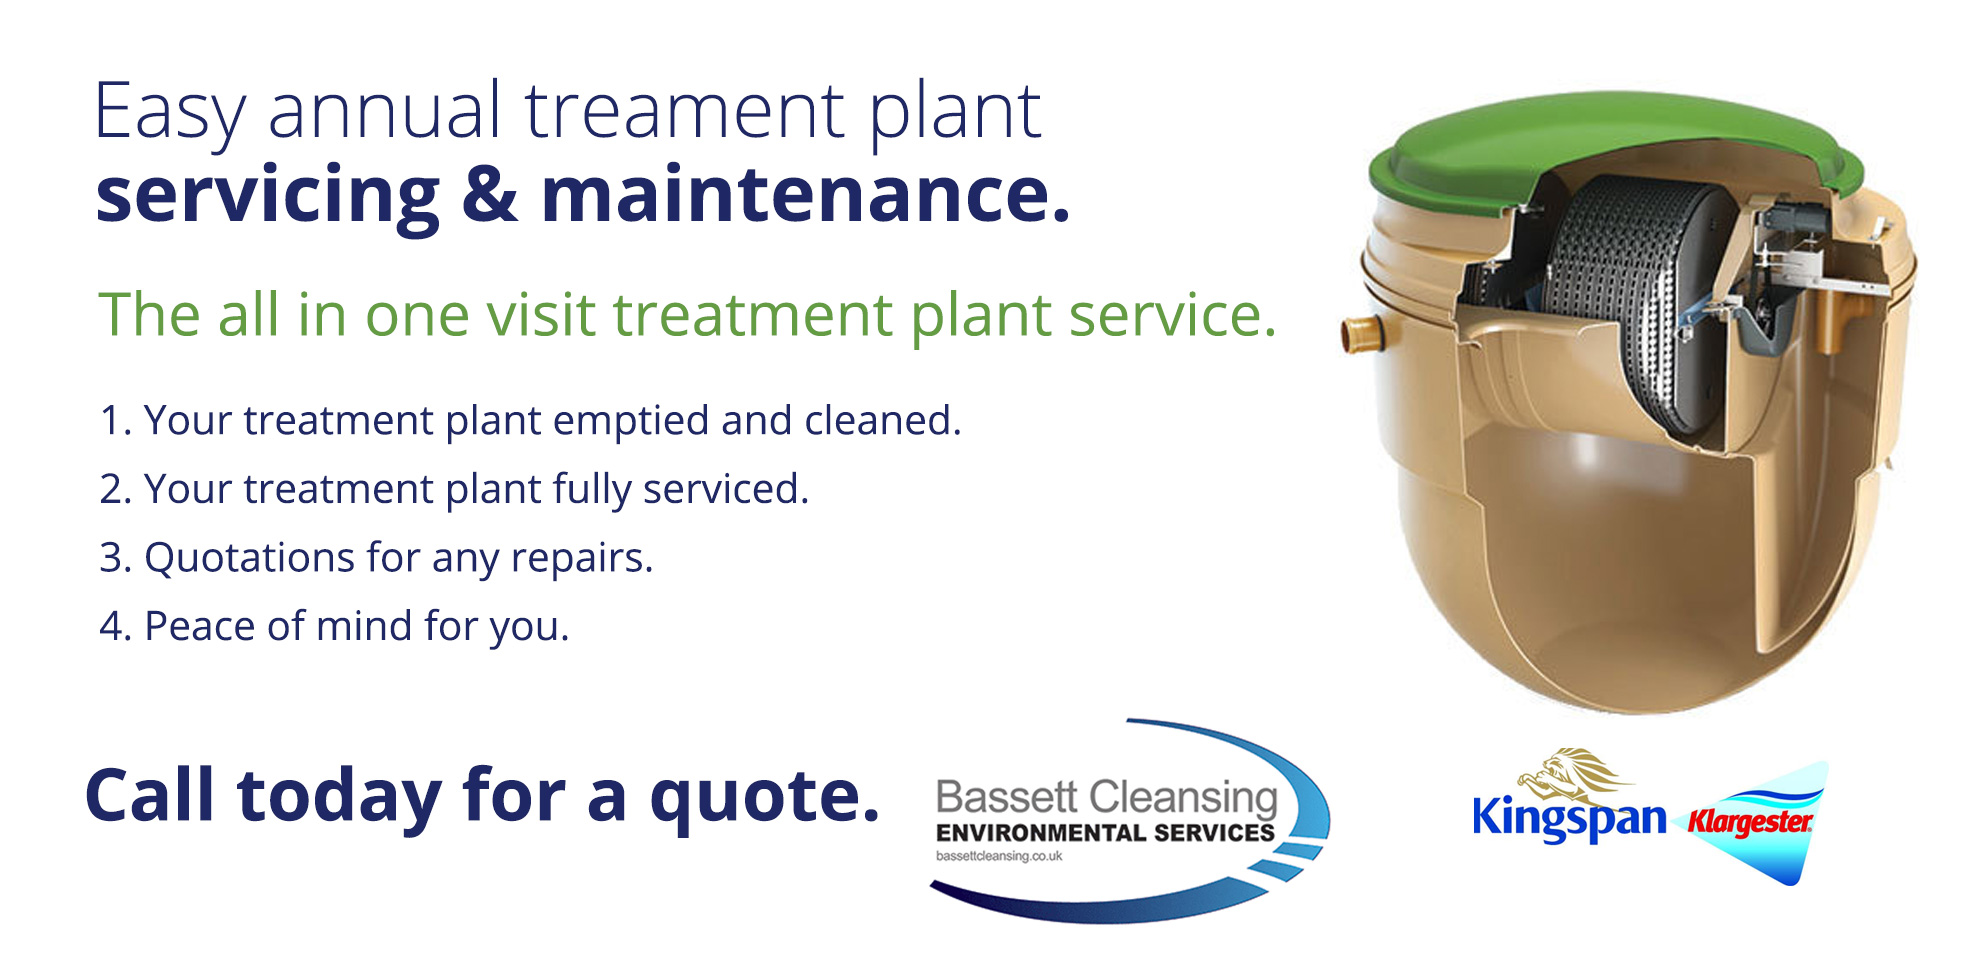 Treatment Plant servicing in Swindon and Wiltshire